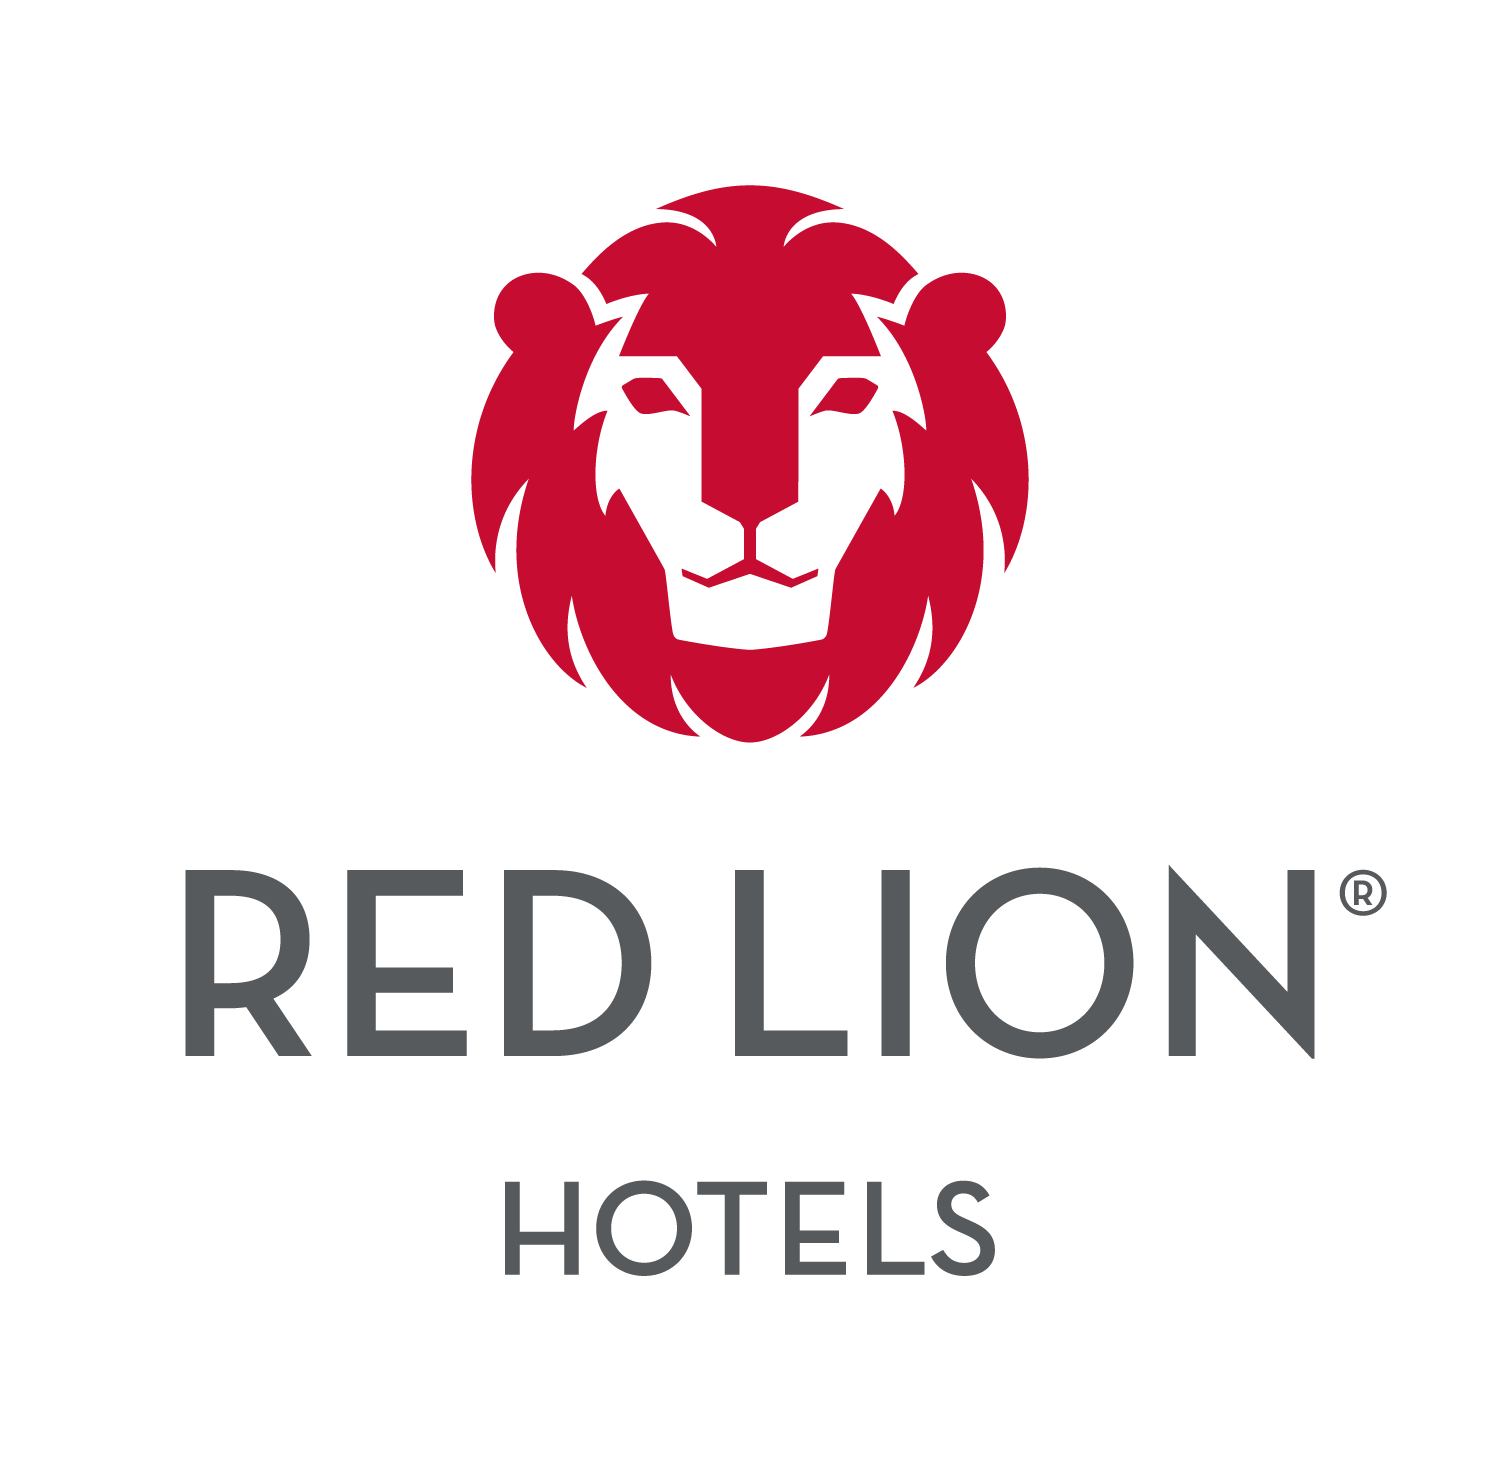 logo-red-lion-hotel